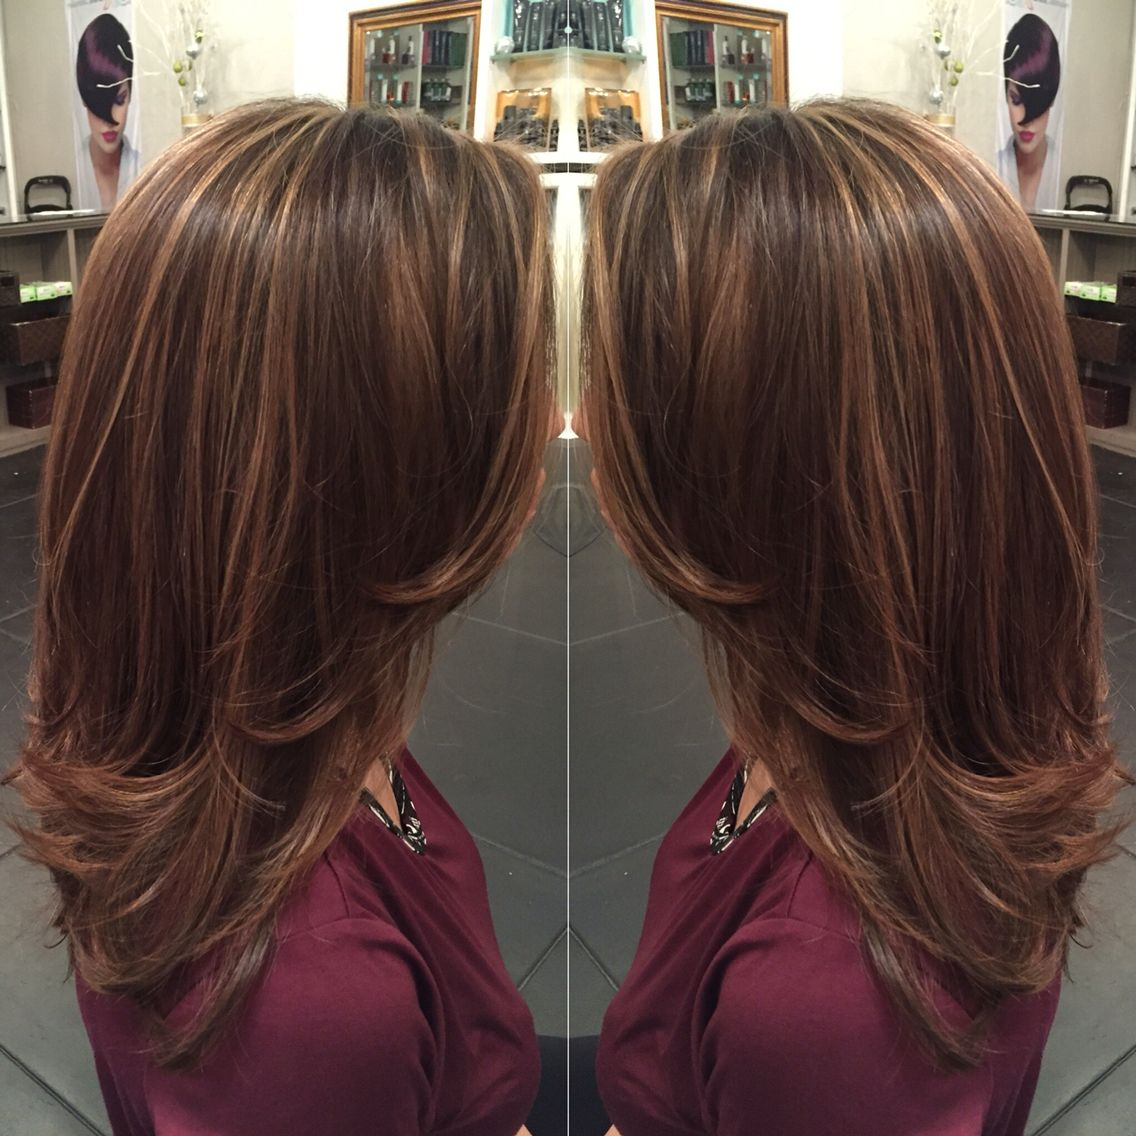 Caramel Highlights On Light Brown Hair And Mid Length Hair